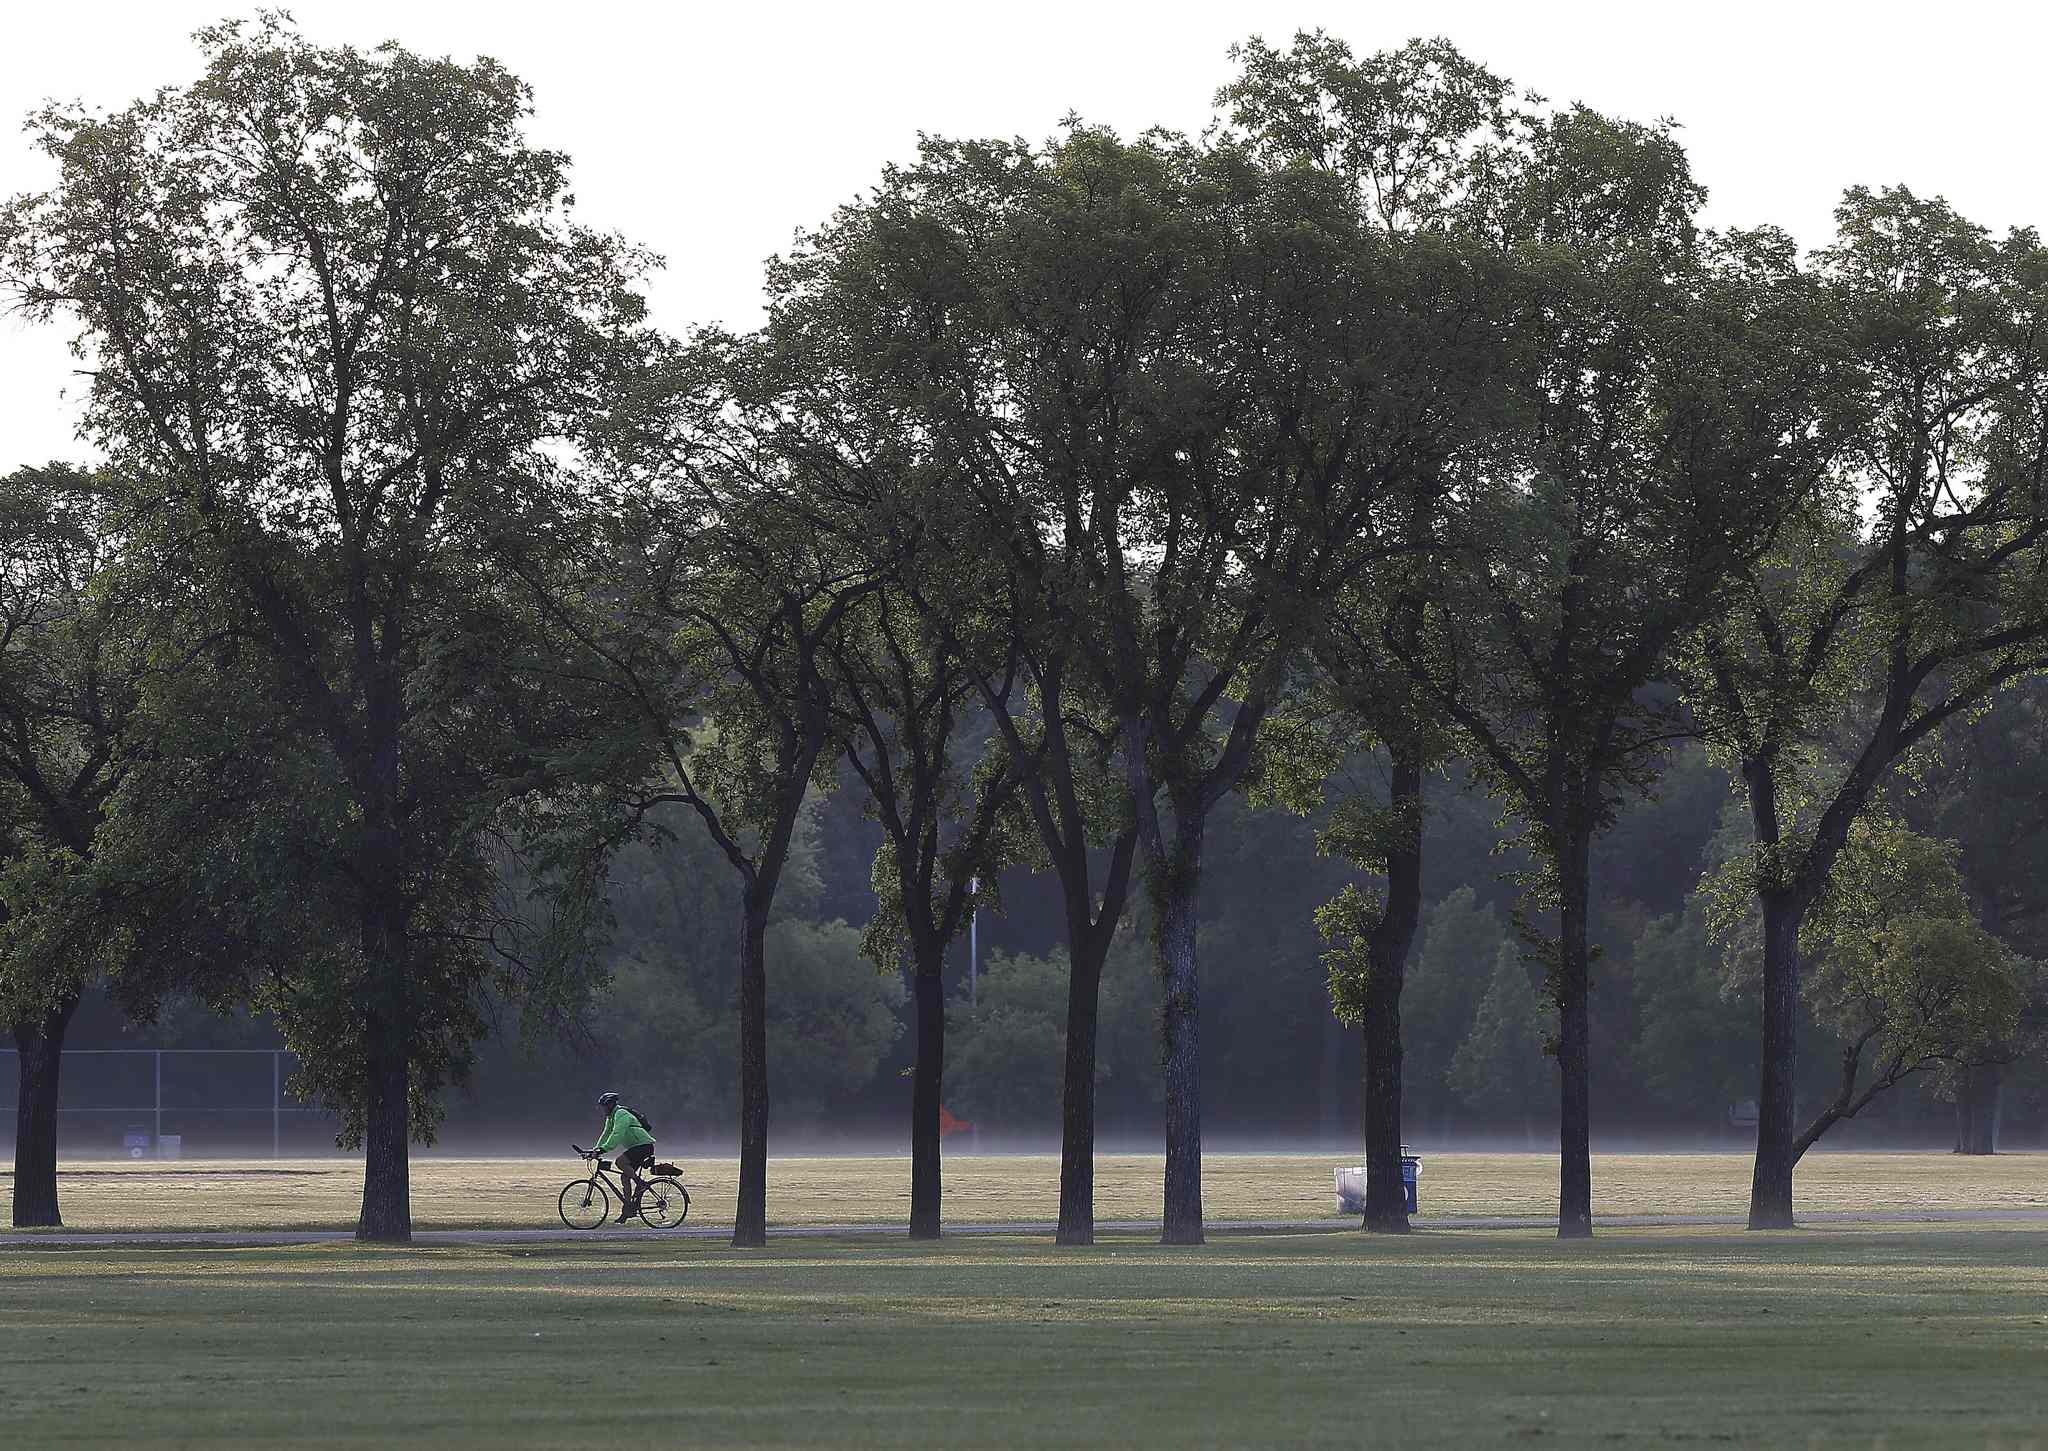 A cyclist rides through Assiniboine Park sunrise  Wednesday morning as mist rises from the park lawns.